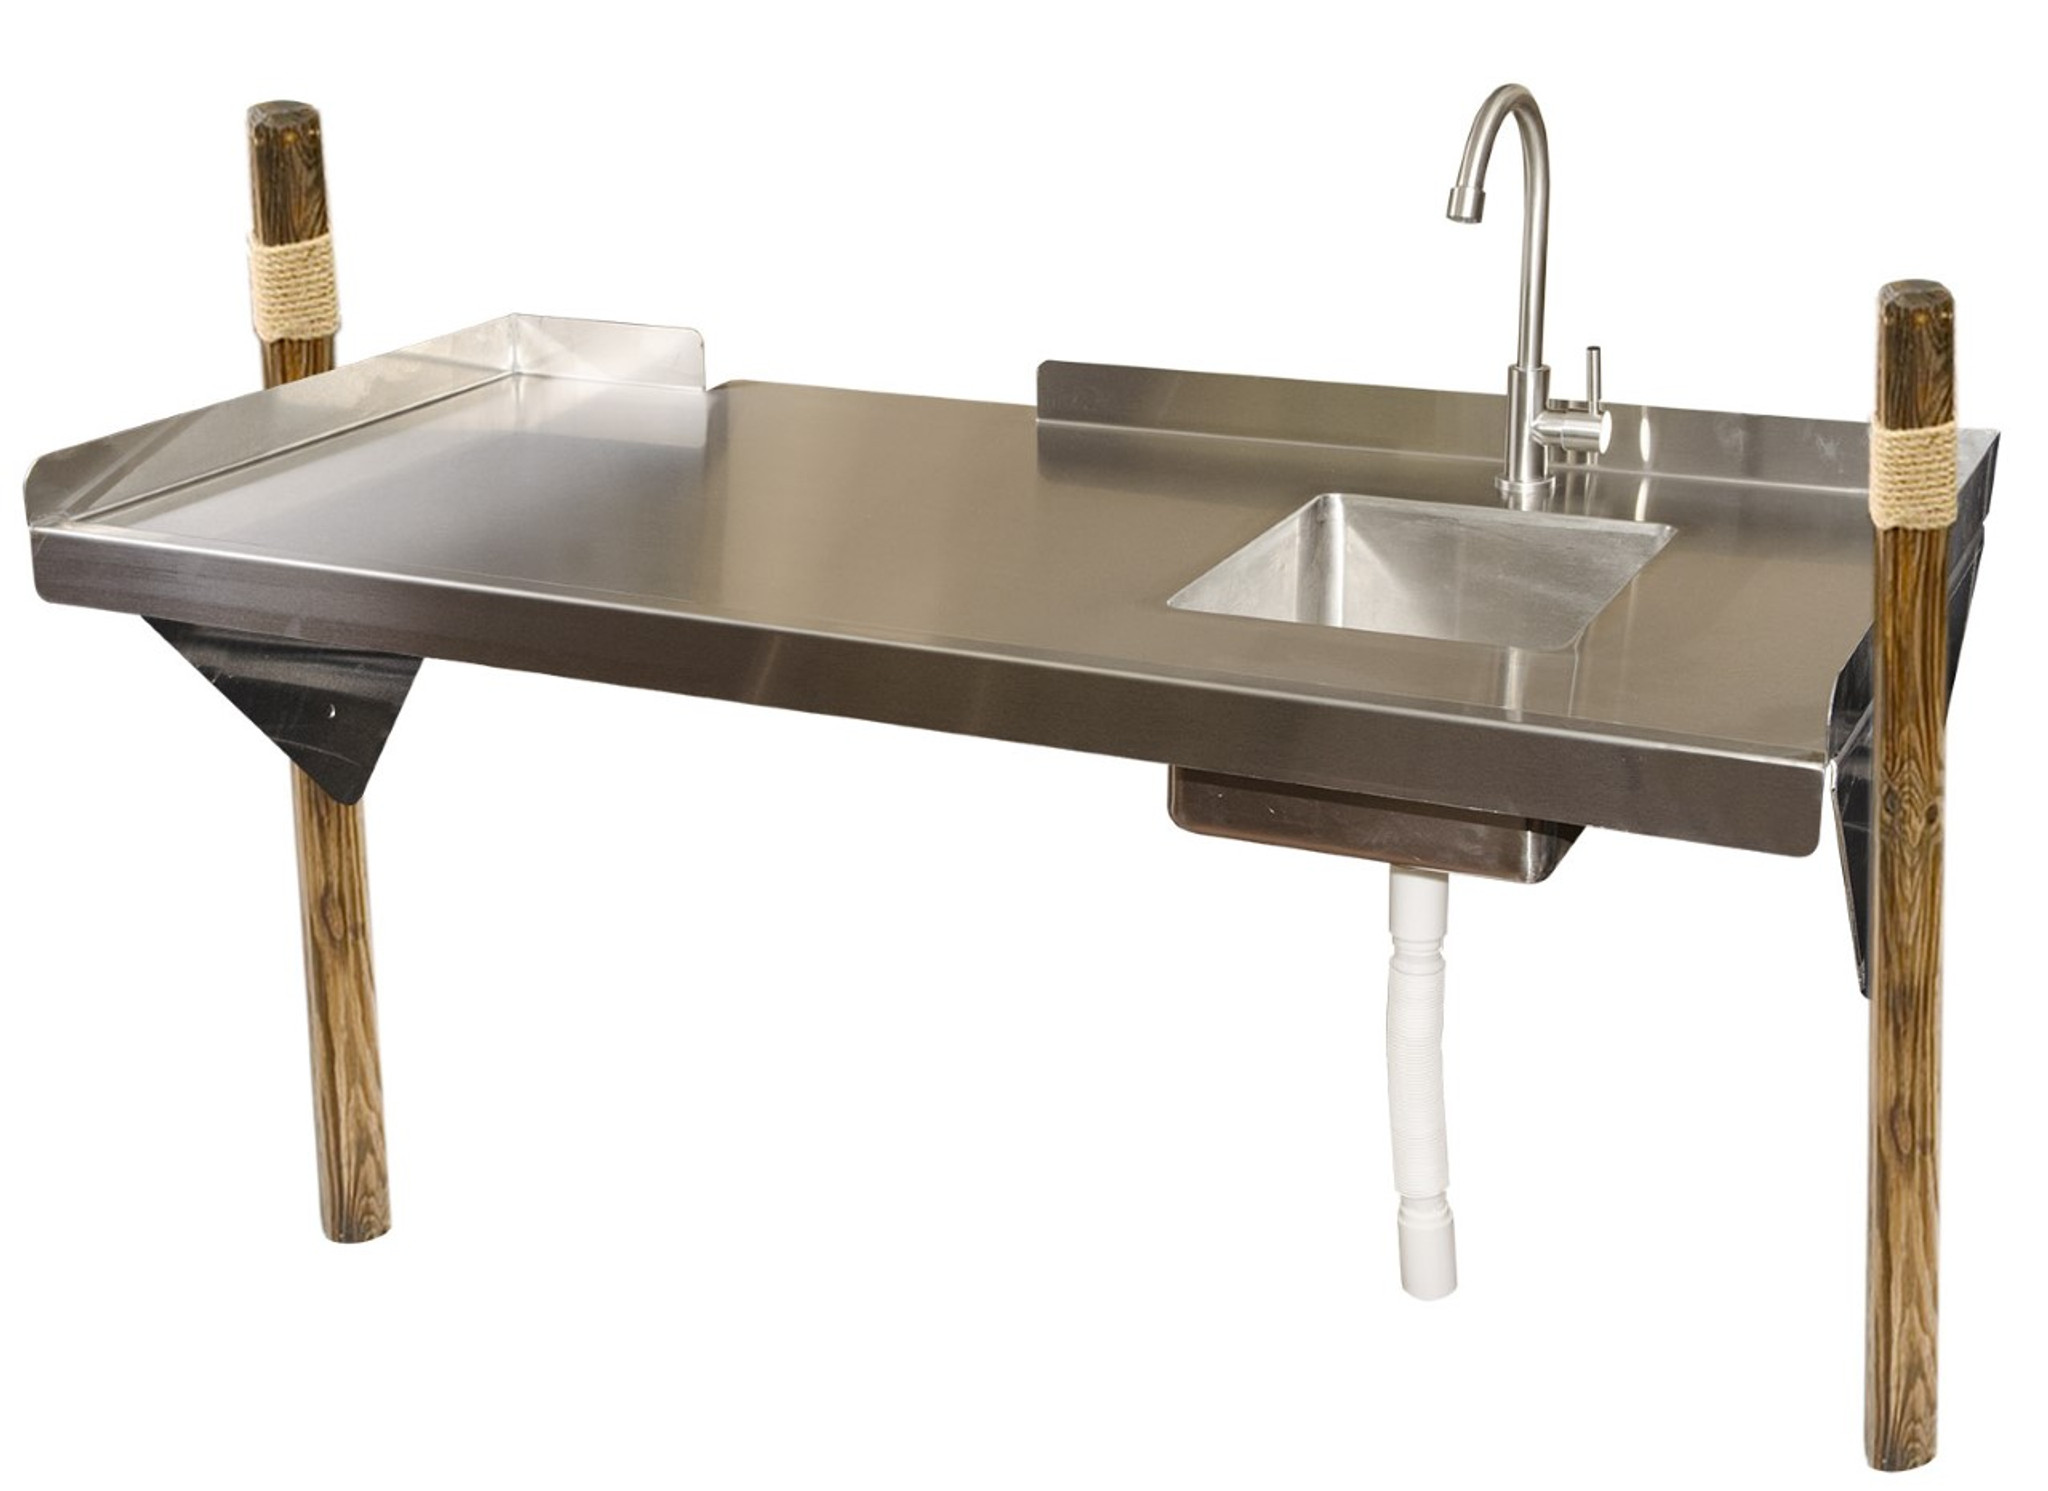 rite hite stainless steel fillet cleaning table